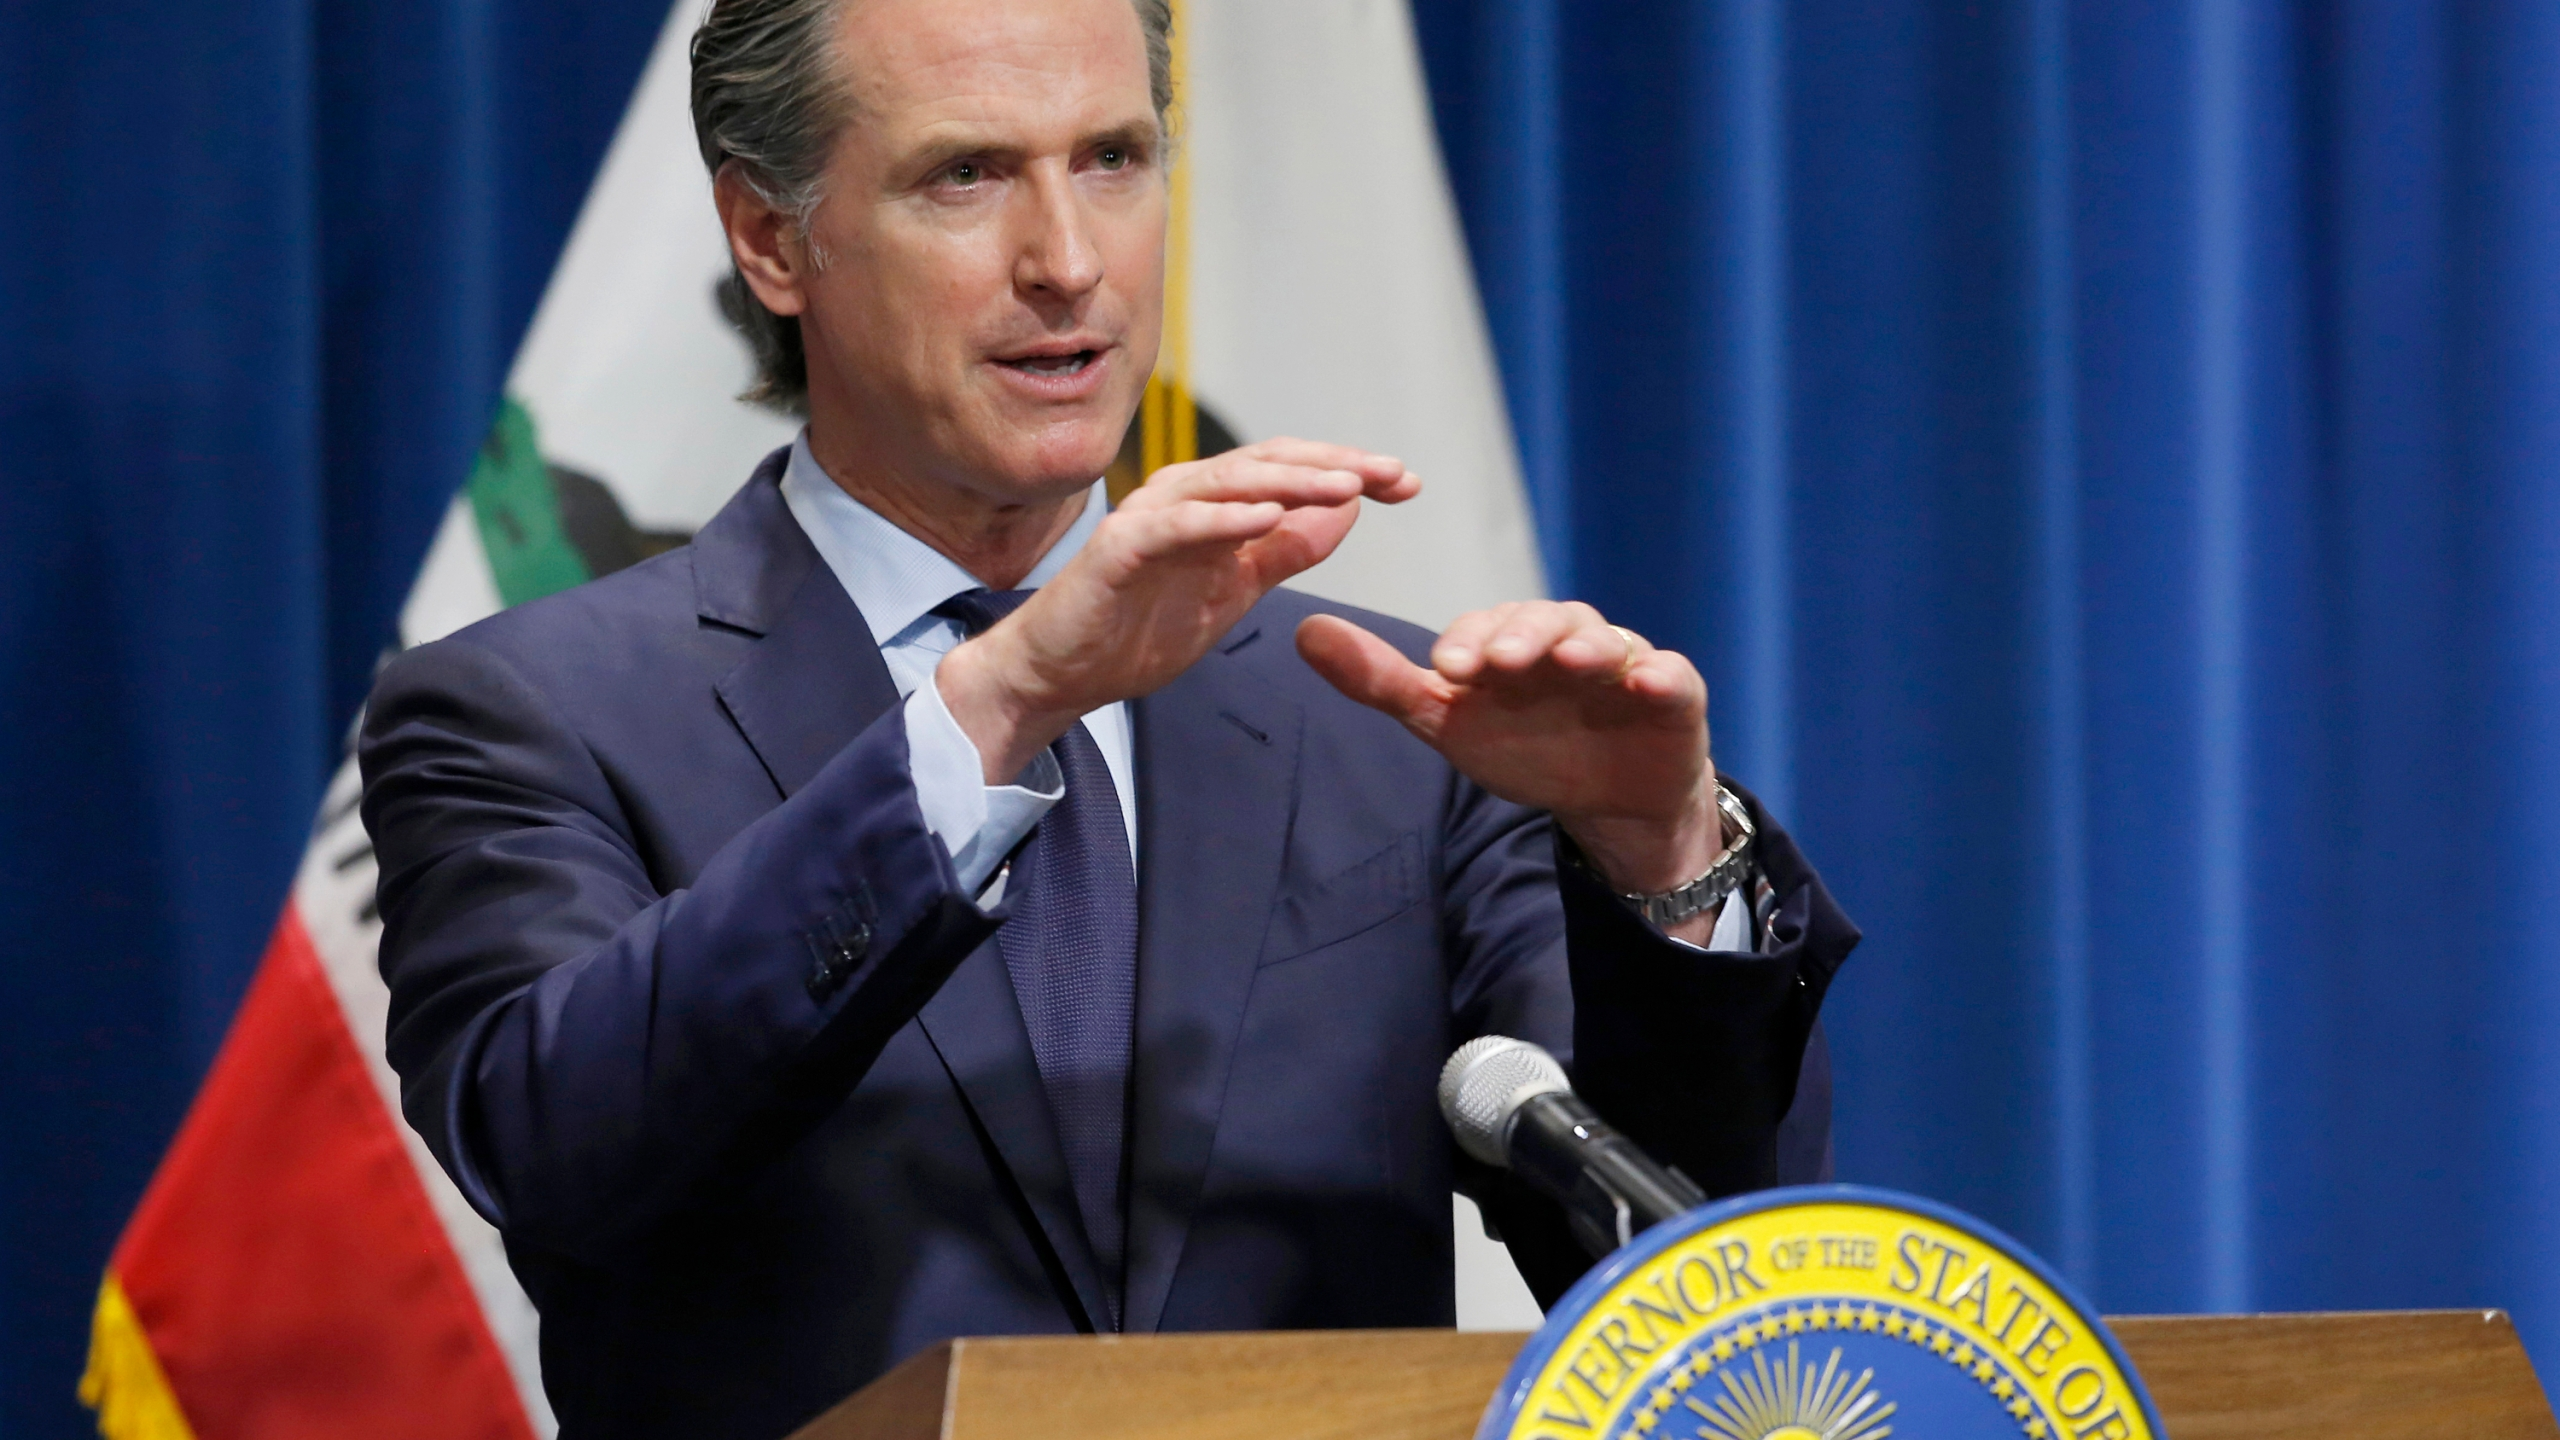 Gov. Gavin Newsom discusses his revised 2020-2021 state budget during a news conference in Sacramento on May 14, 2020. (Rich Pedroncelli / Associated Press)